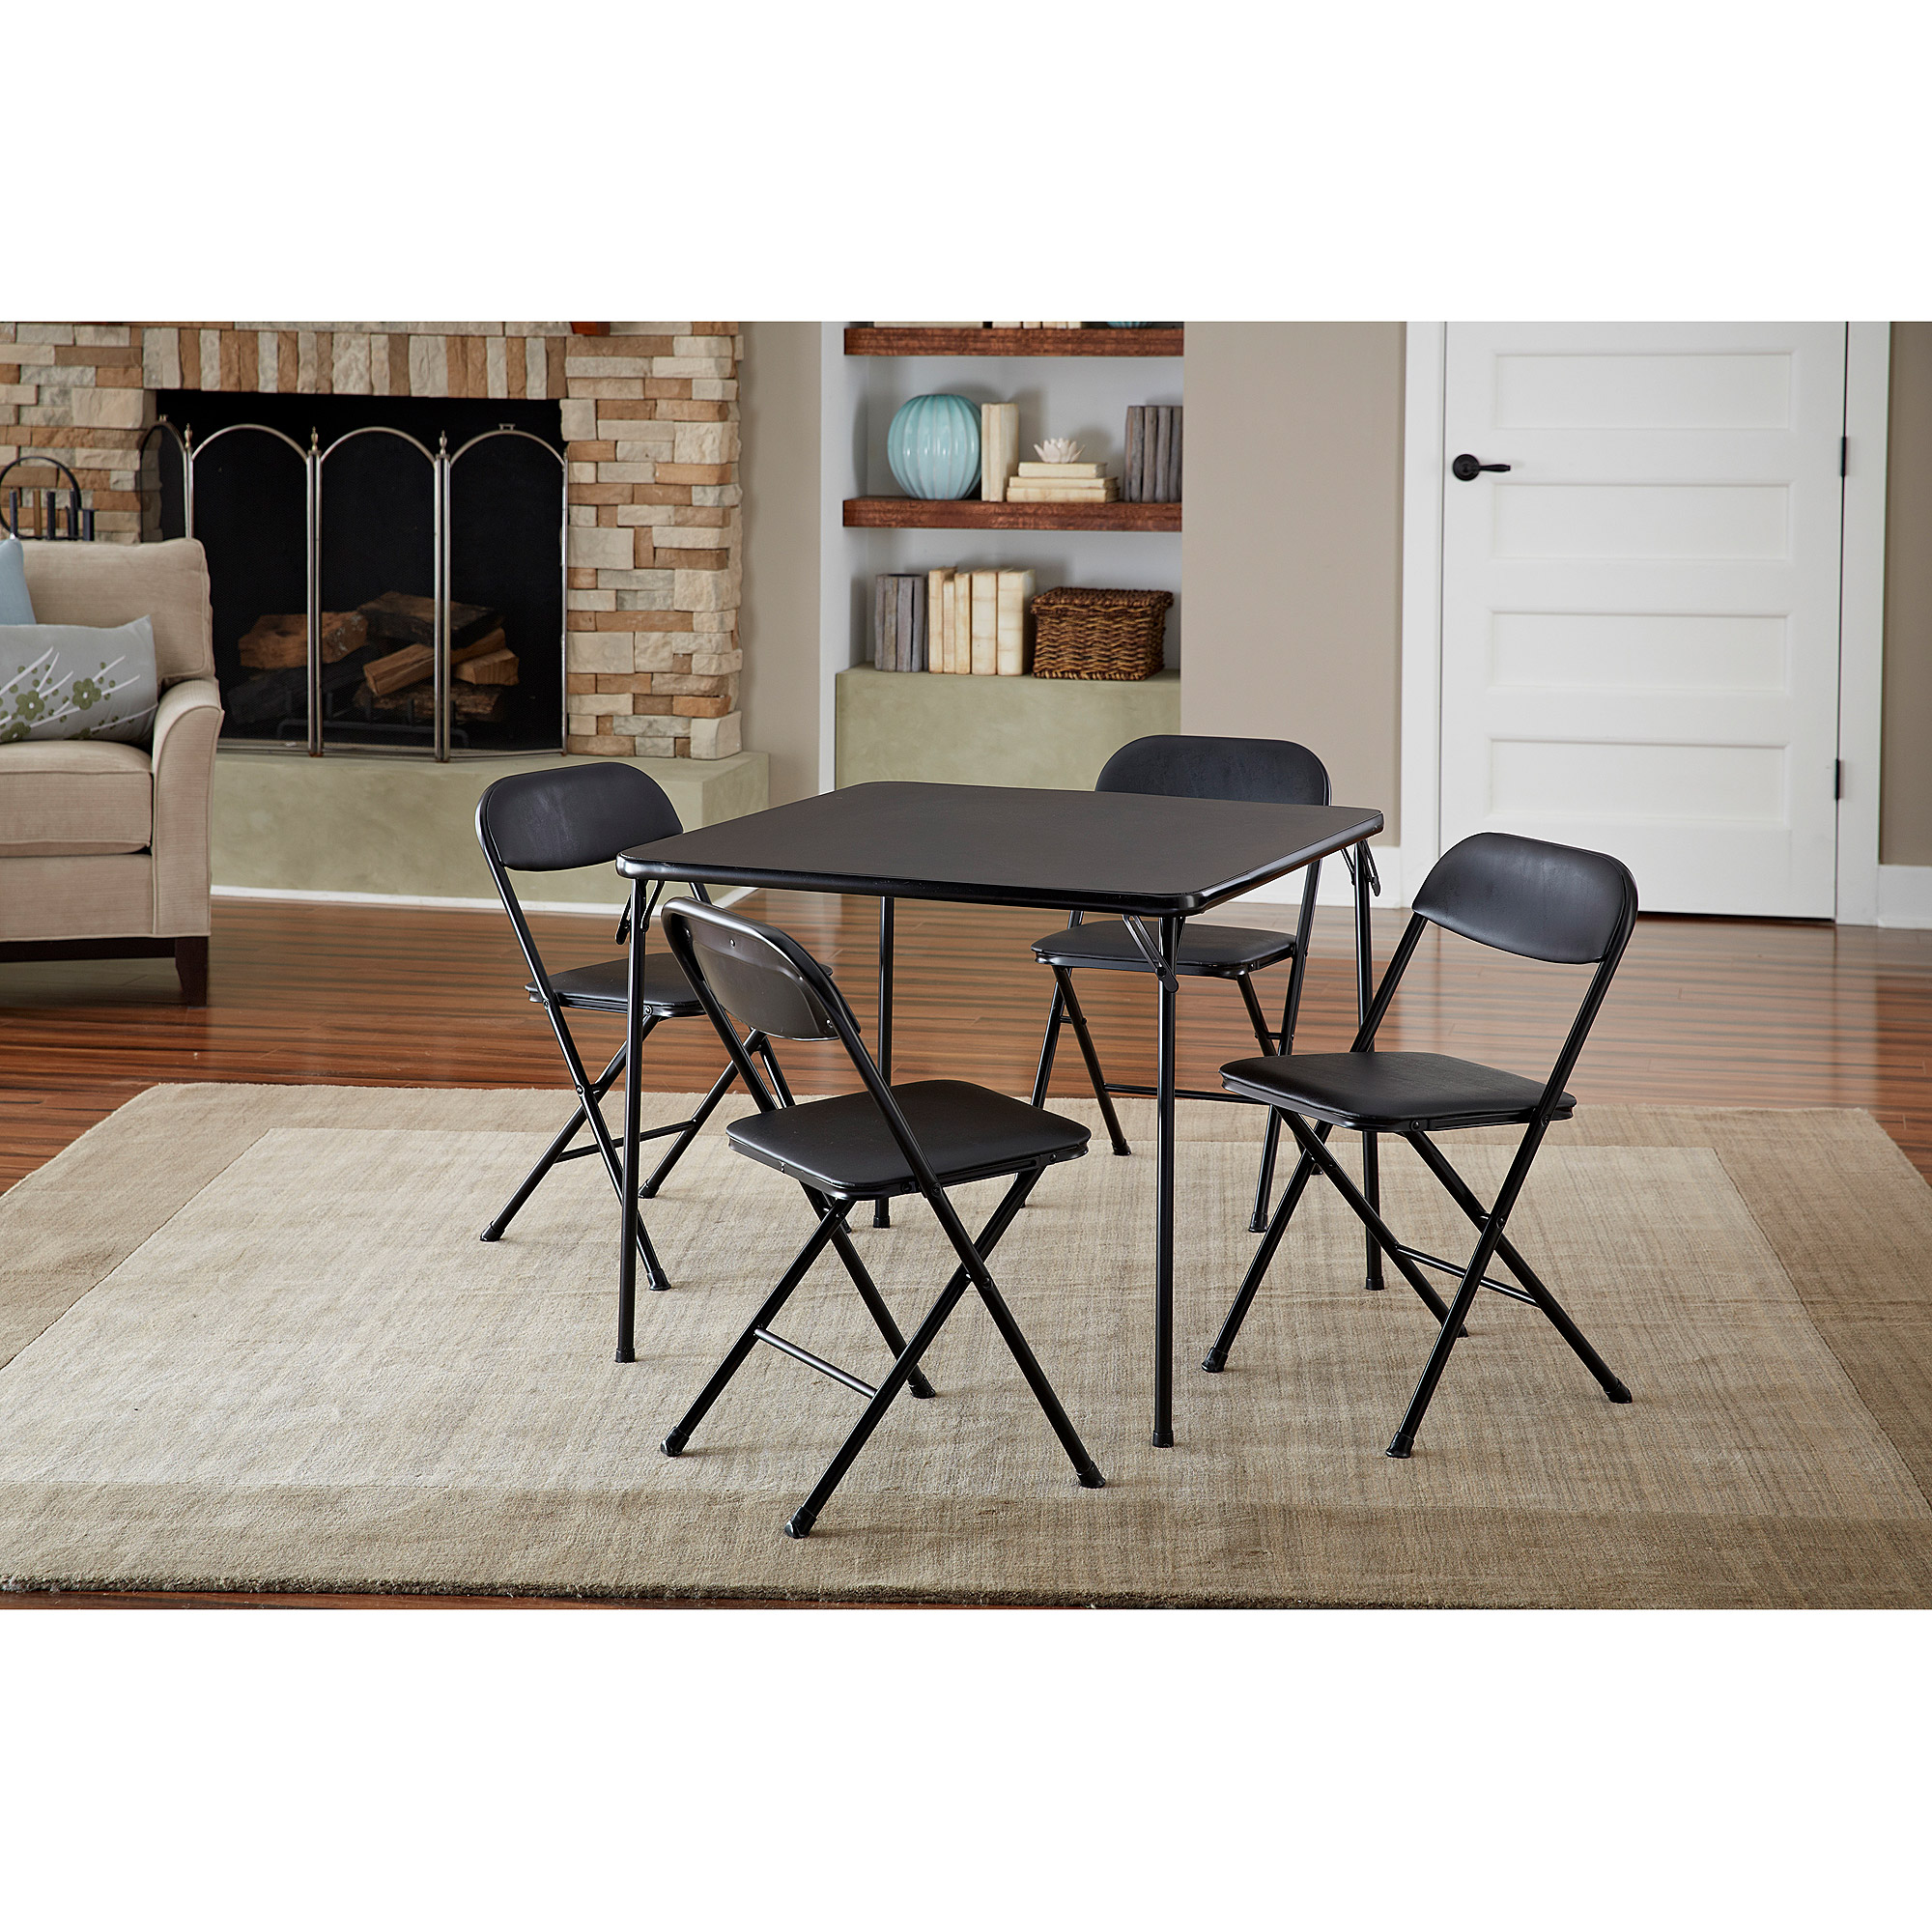 sc 1 st  Walmart & Cosco 34 in. Square Table and Chair Set - Wheat - 5 Pack - Walmart.com